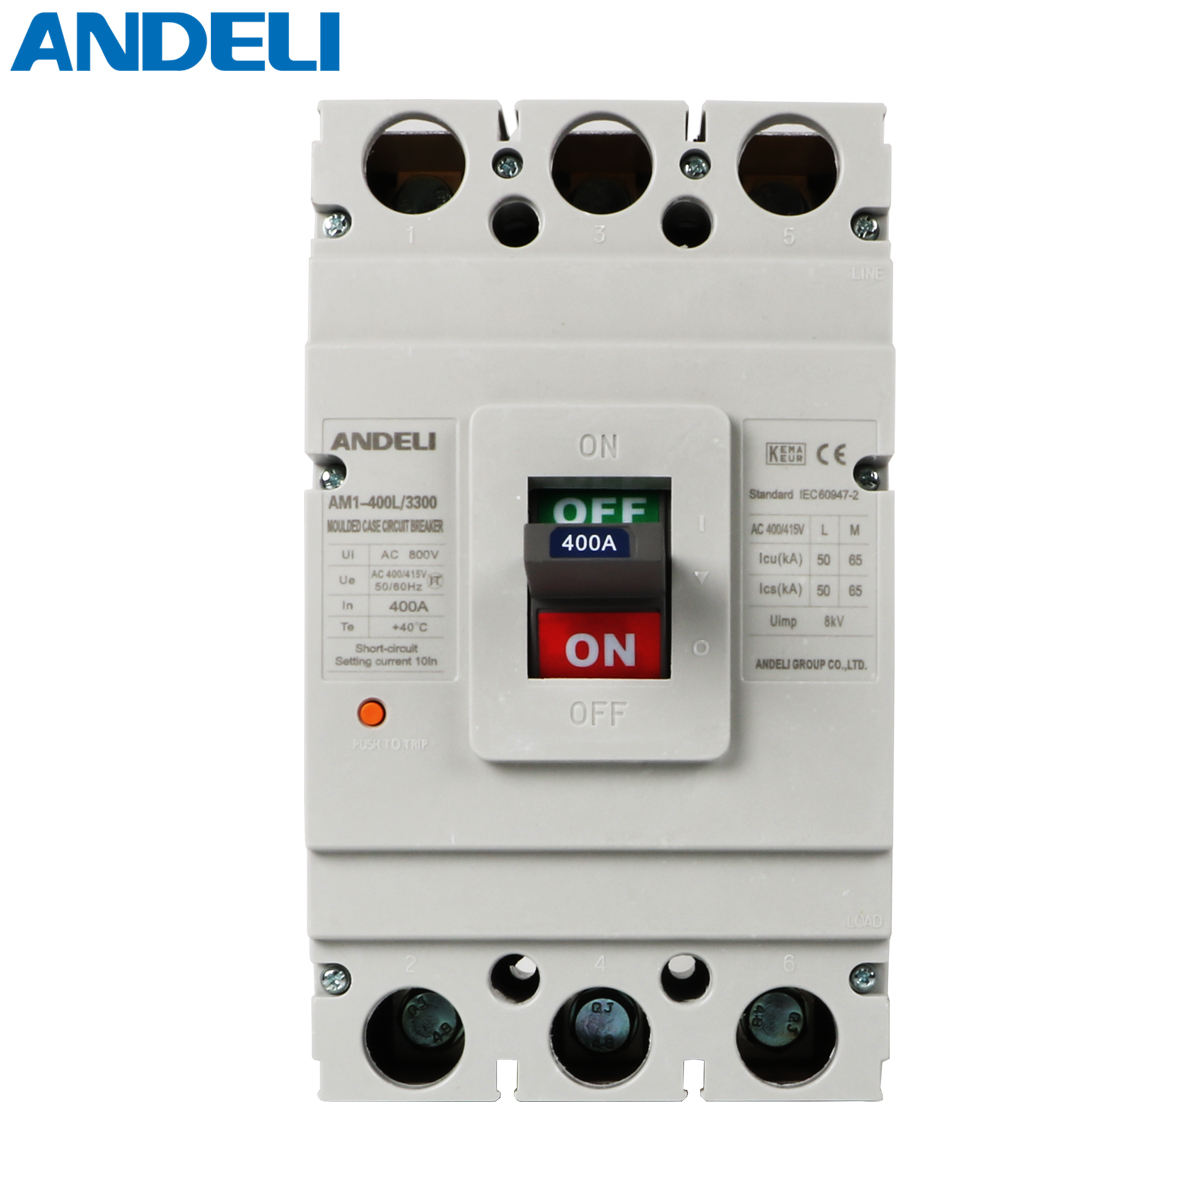 ANDELI AM1-400L/3300 Moulded Case Circuit Breaker Circuit Breaker Mccb